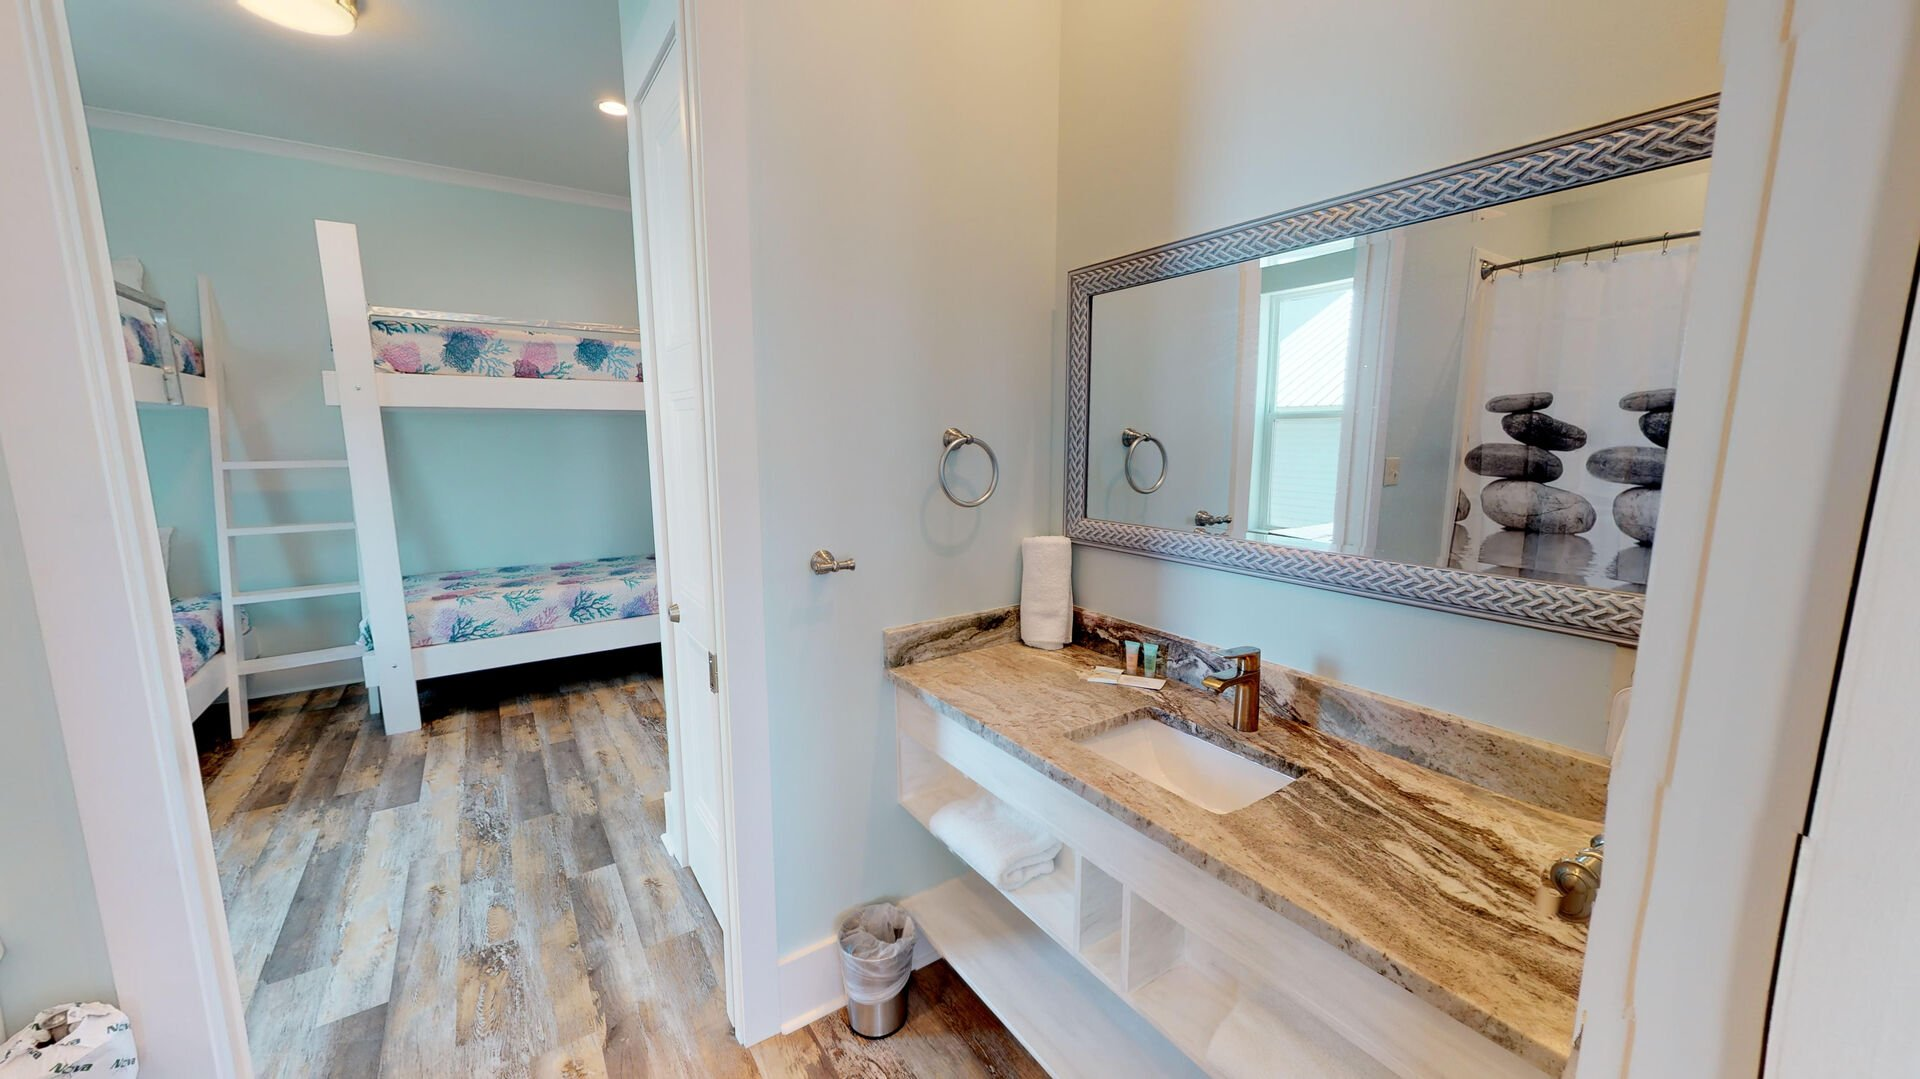 Bedrooms 3 & 4 share a jack and jill bathroom with tub/shower combo.